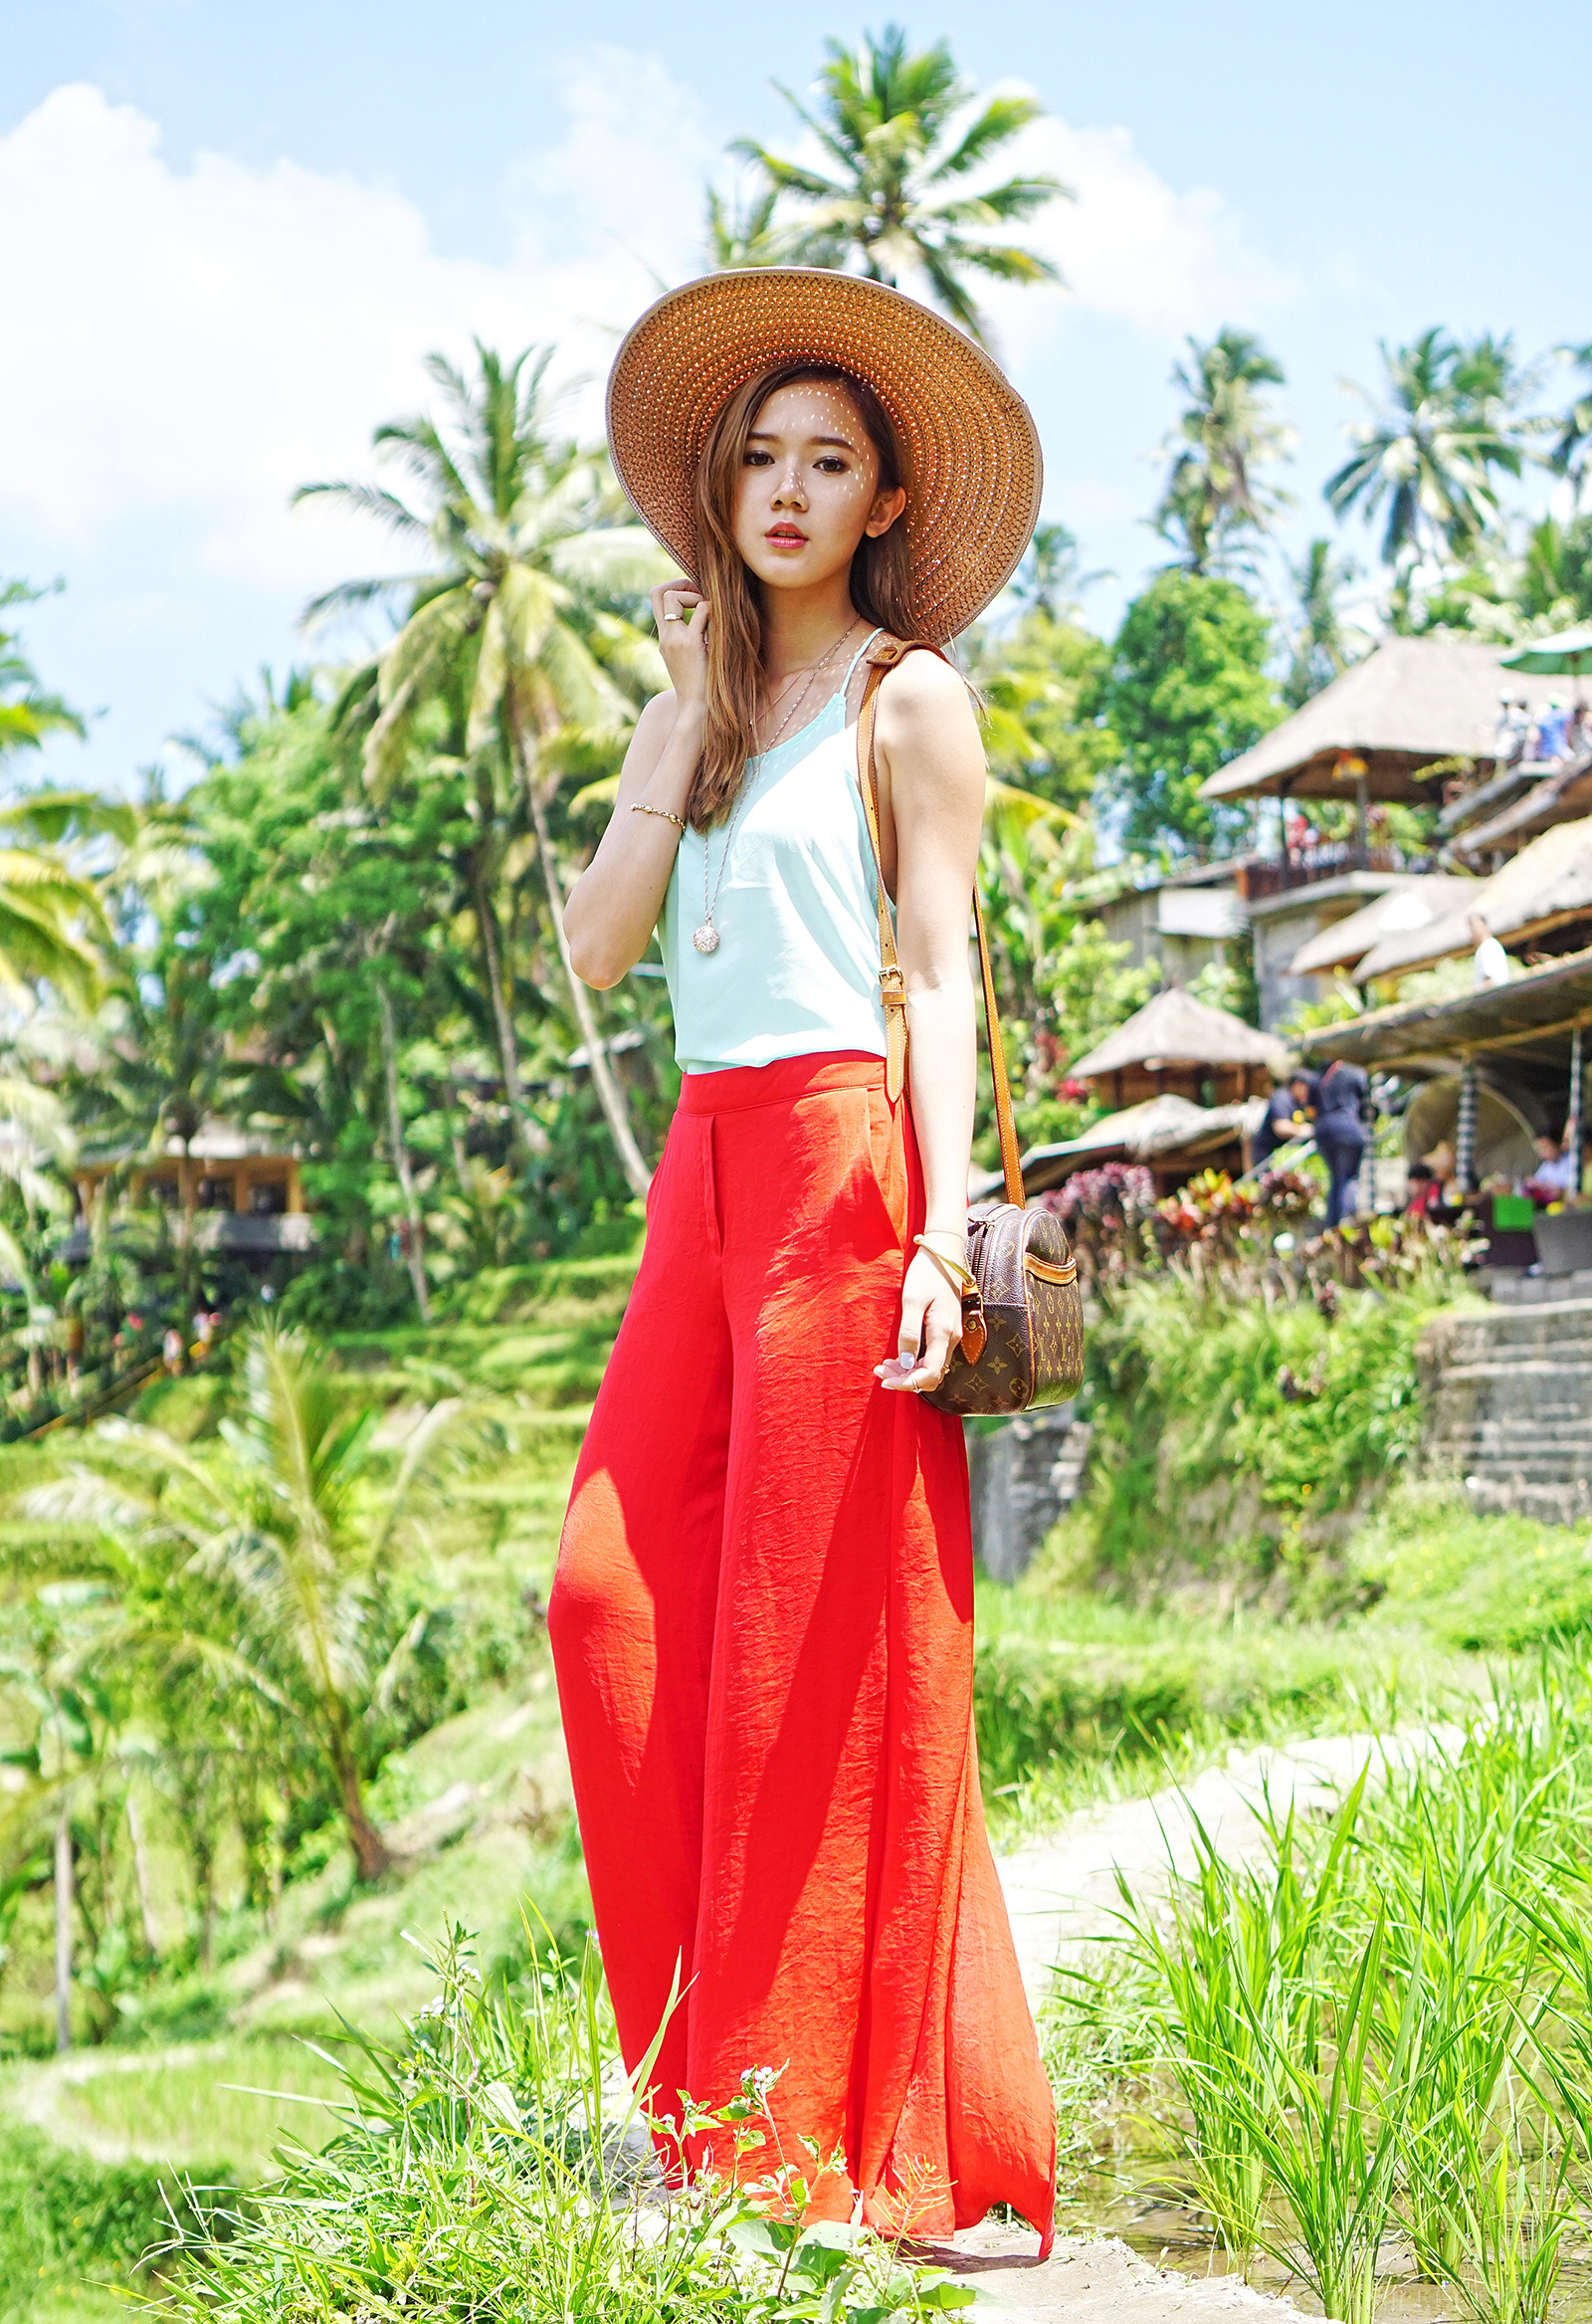 Casual Fashion At Bali's Tegalalang Rice Terraces | Camille Co